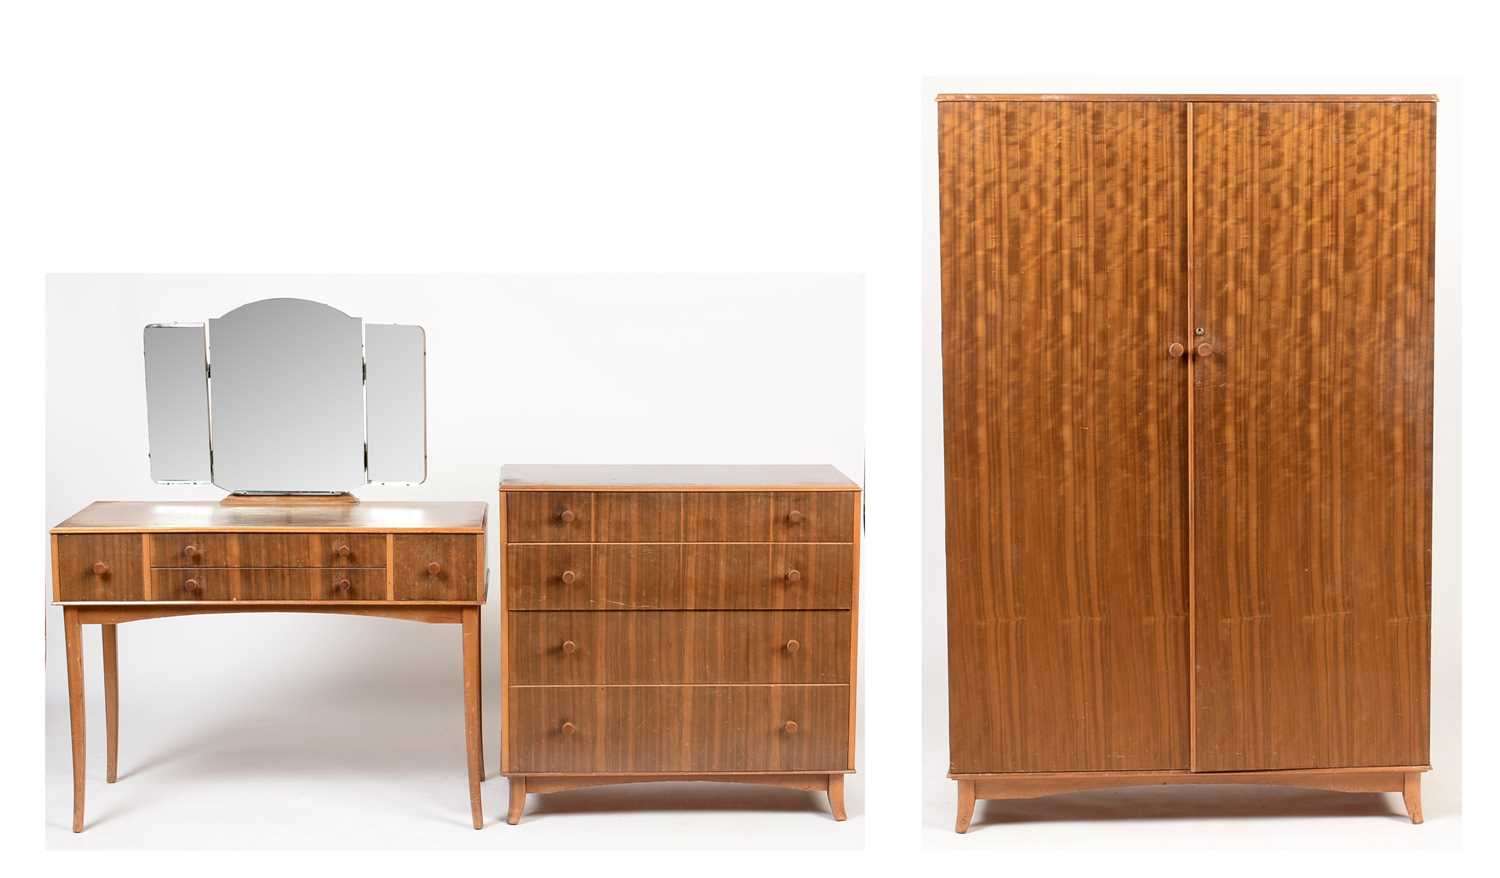 Lot 802 - Vesper furniture: dressing table, four-drawer chest and wardrobe